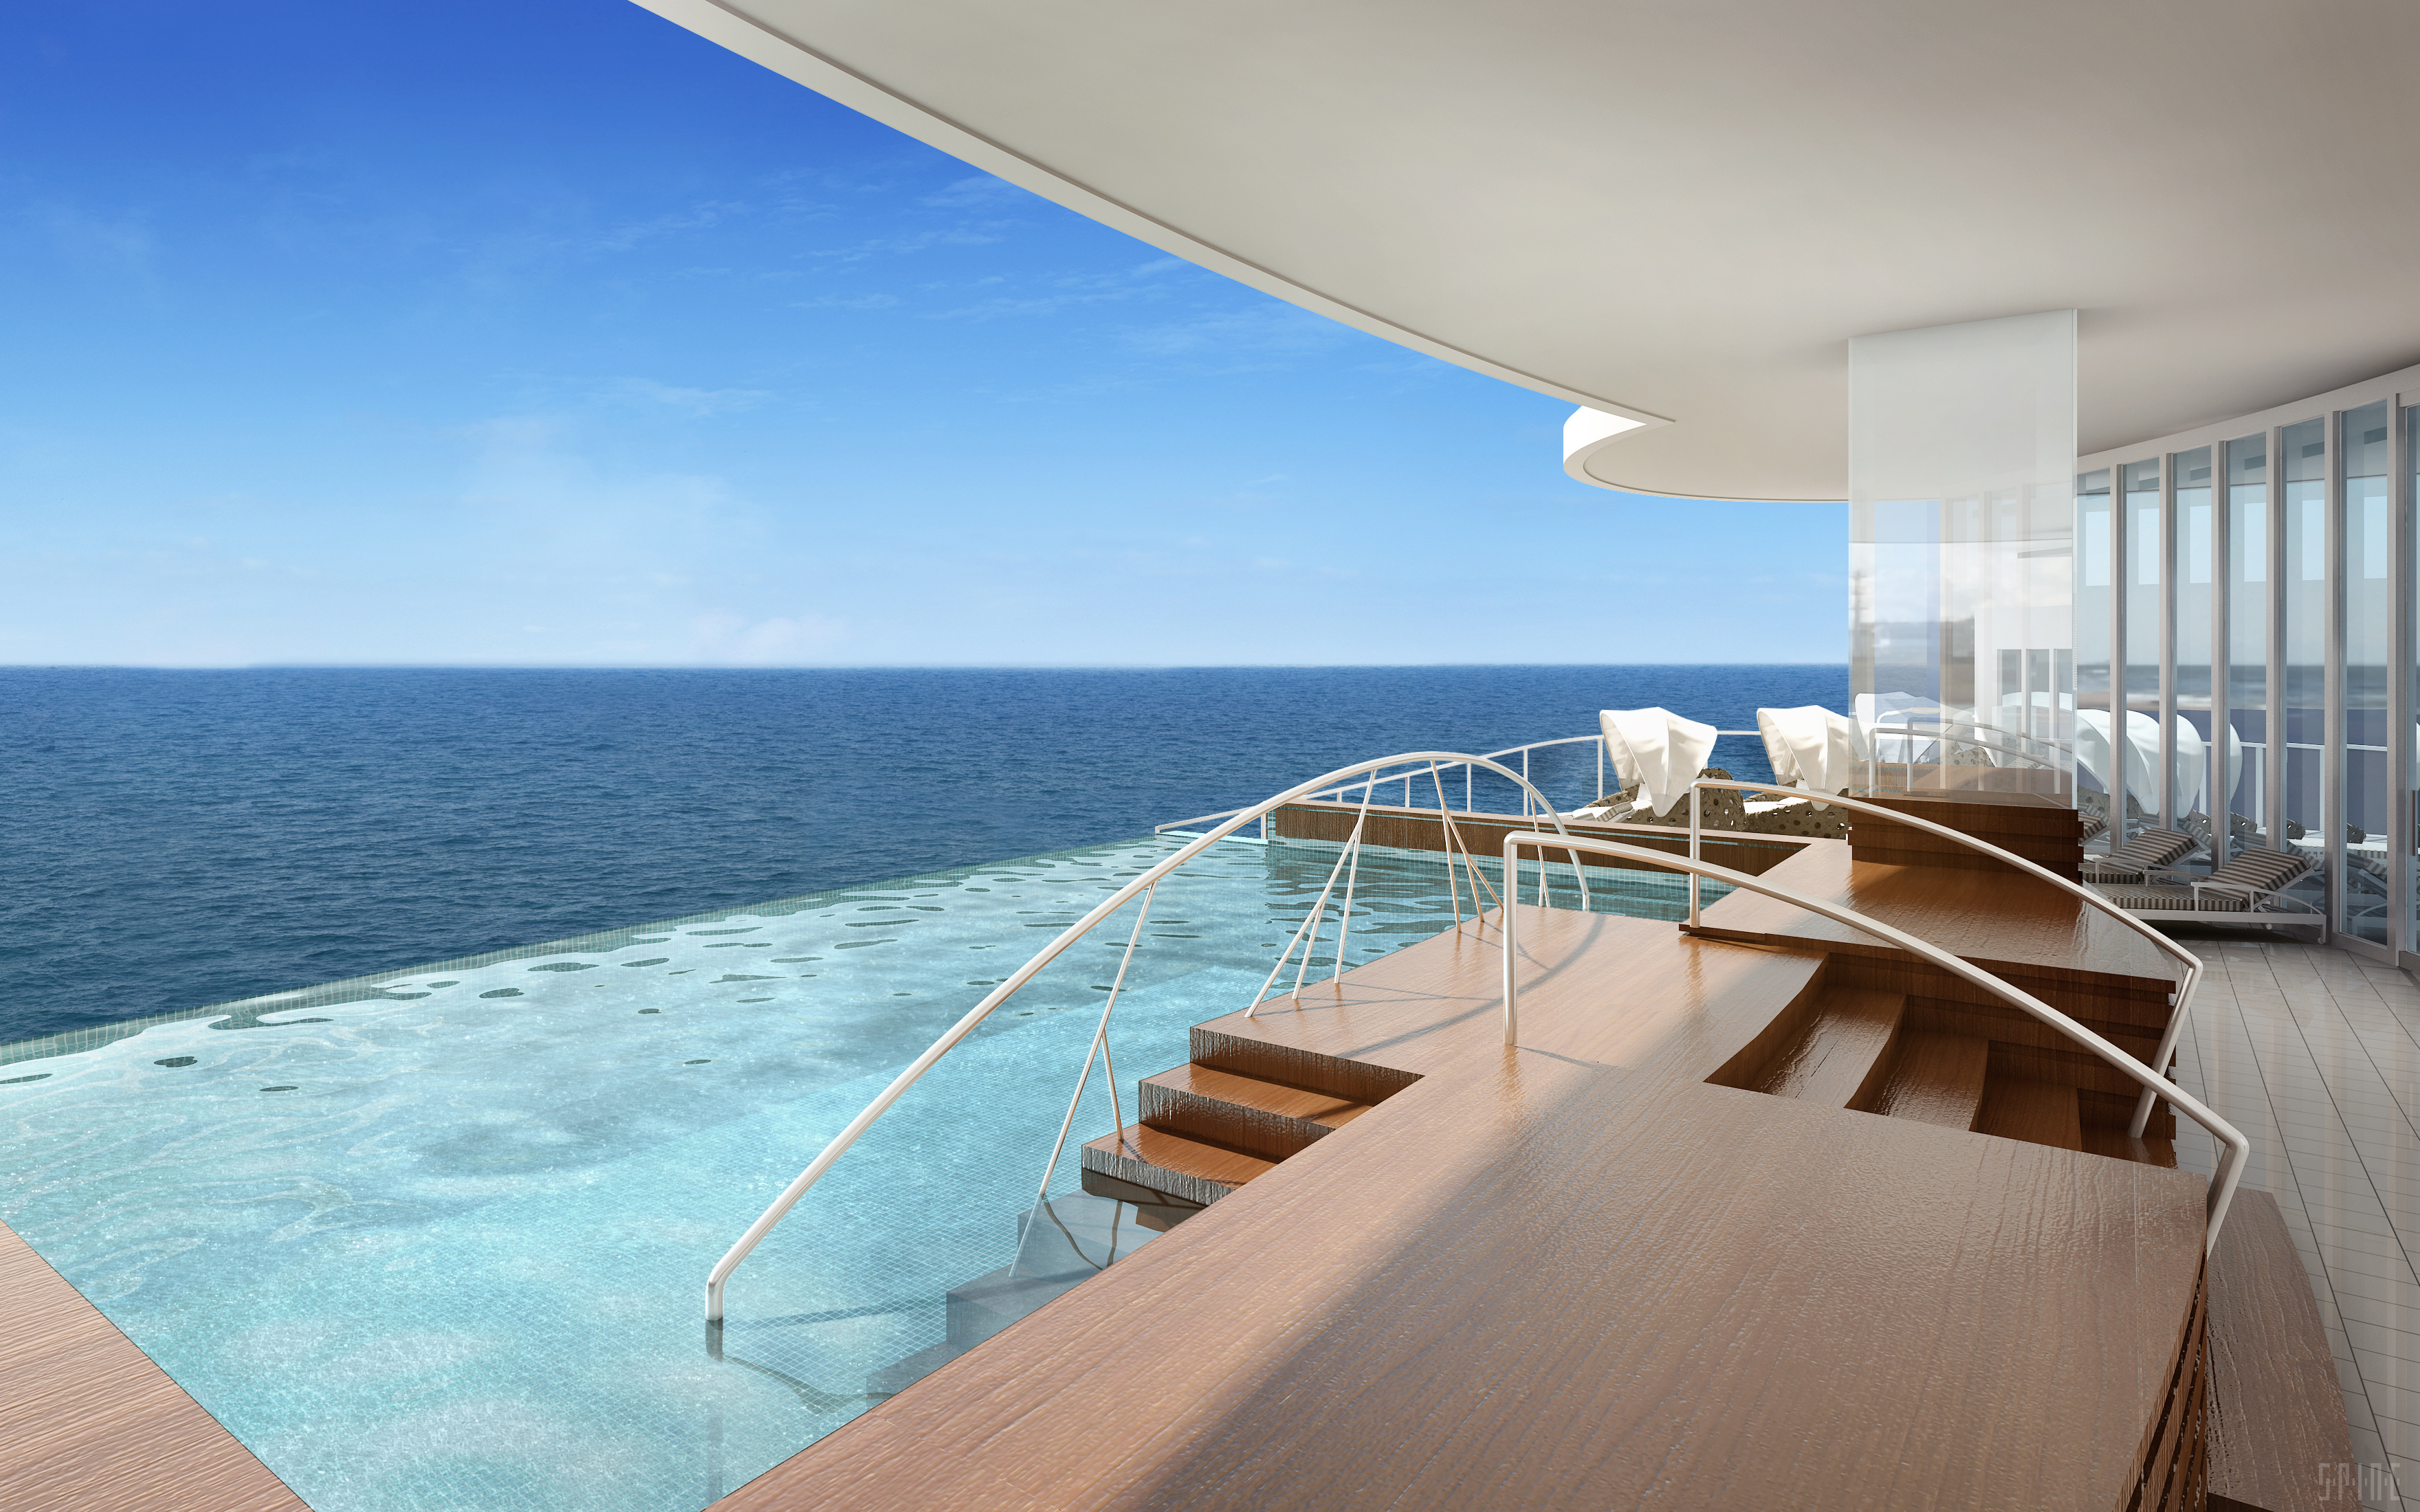 Sea view from the Regent Suite - picture by Norvegian Cruise Line